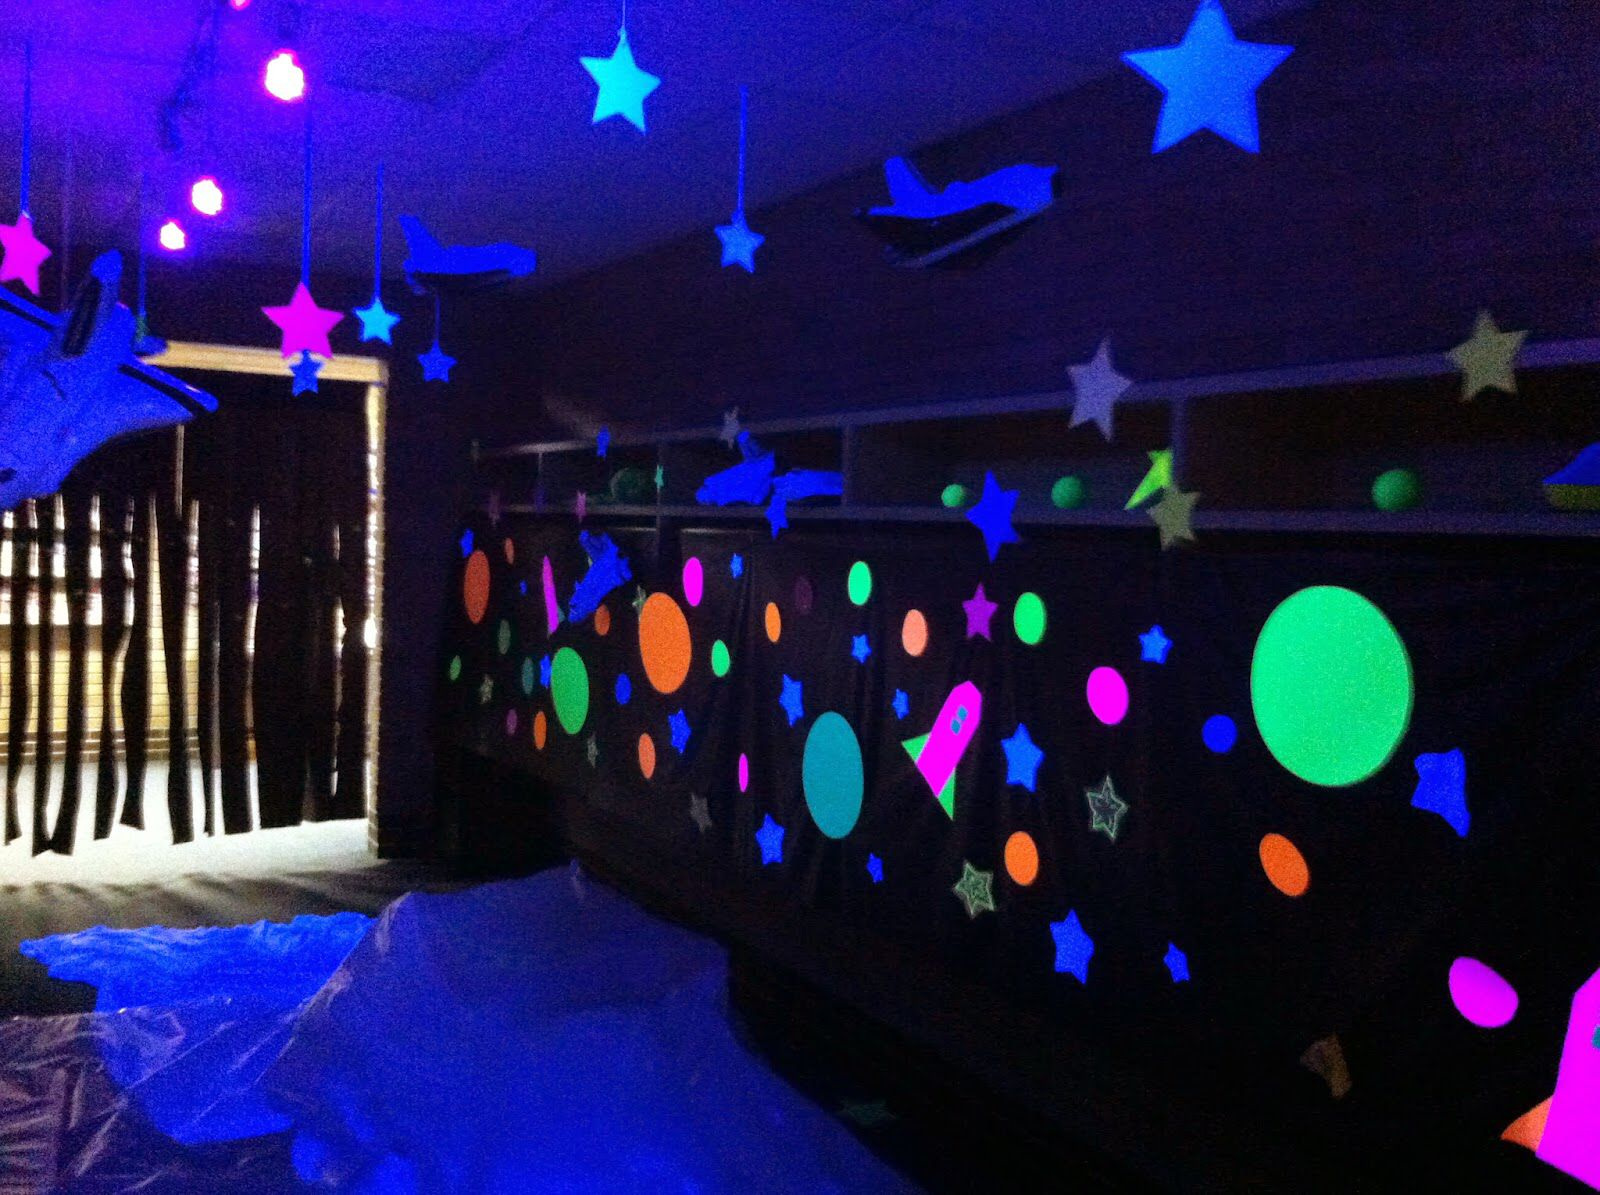 Hallway Outer Space Decorations Space Party Decorations Halloween Themes Decorations